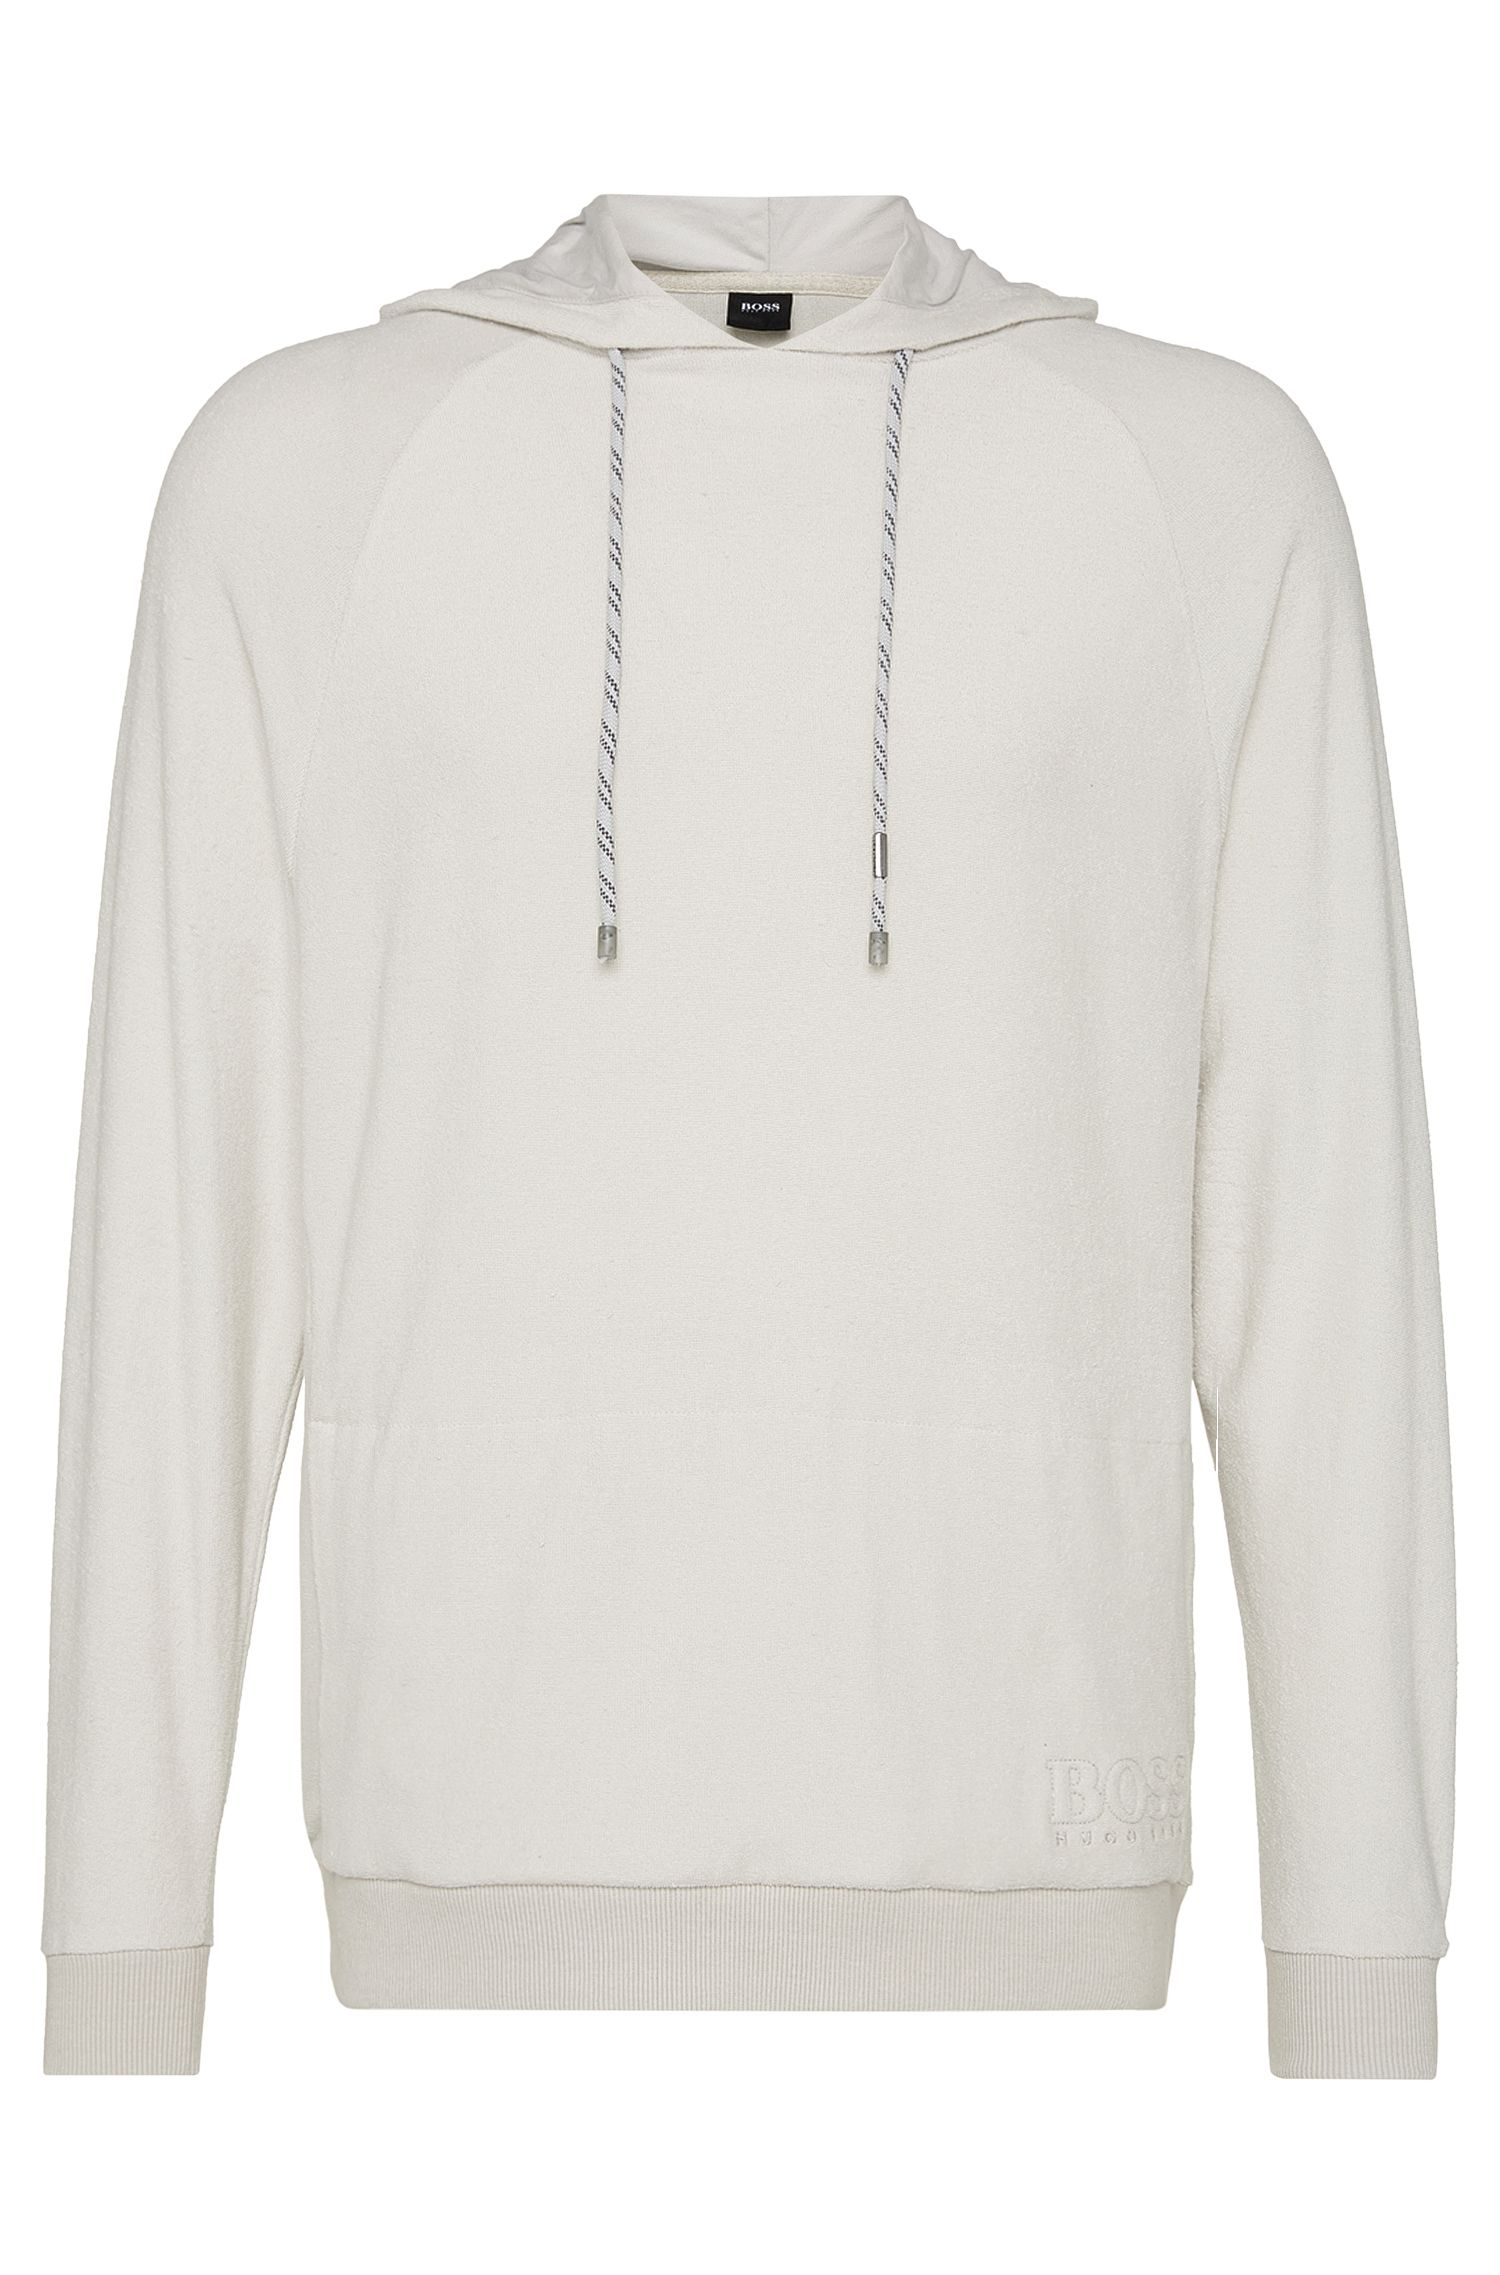 Sweat en coton : « Shirt Hooded LS »